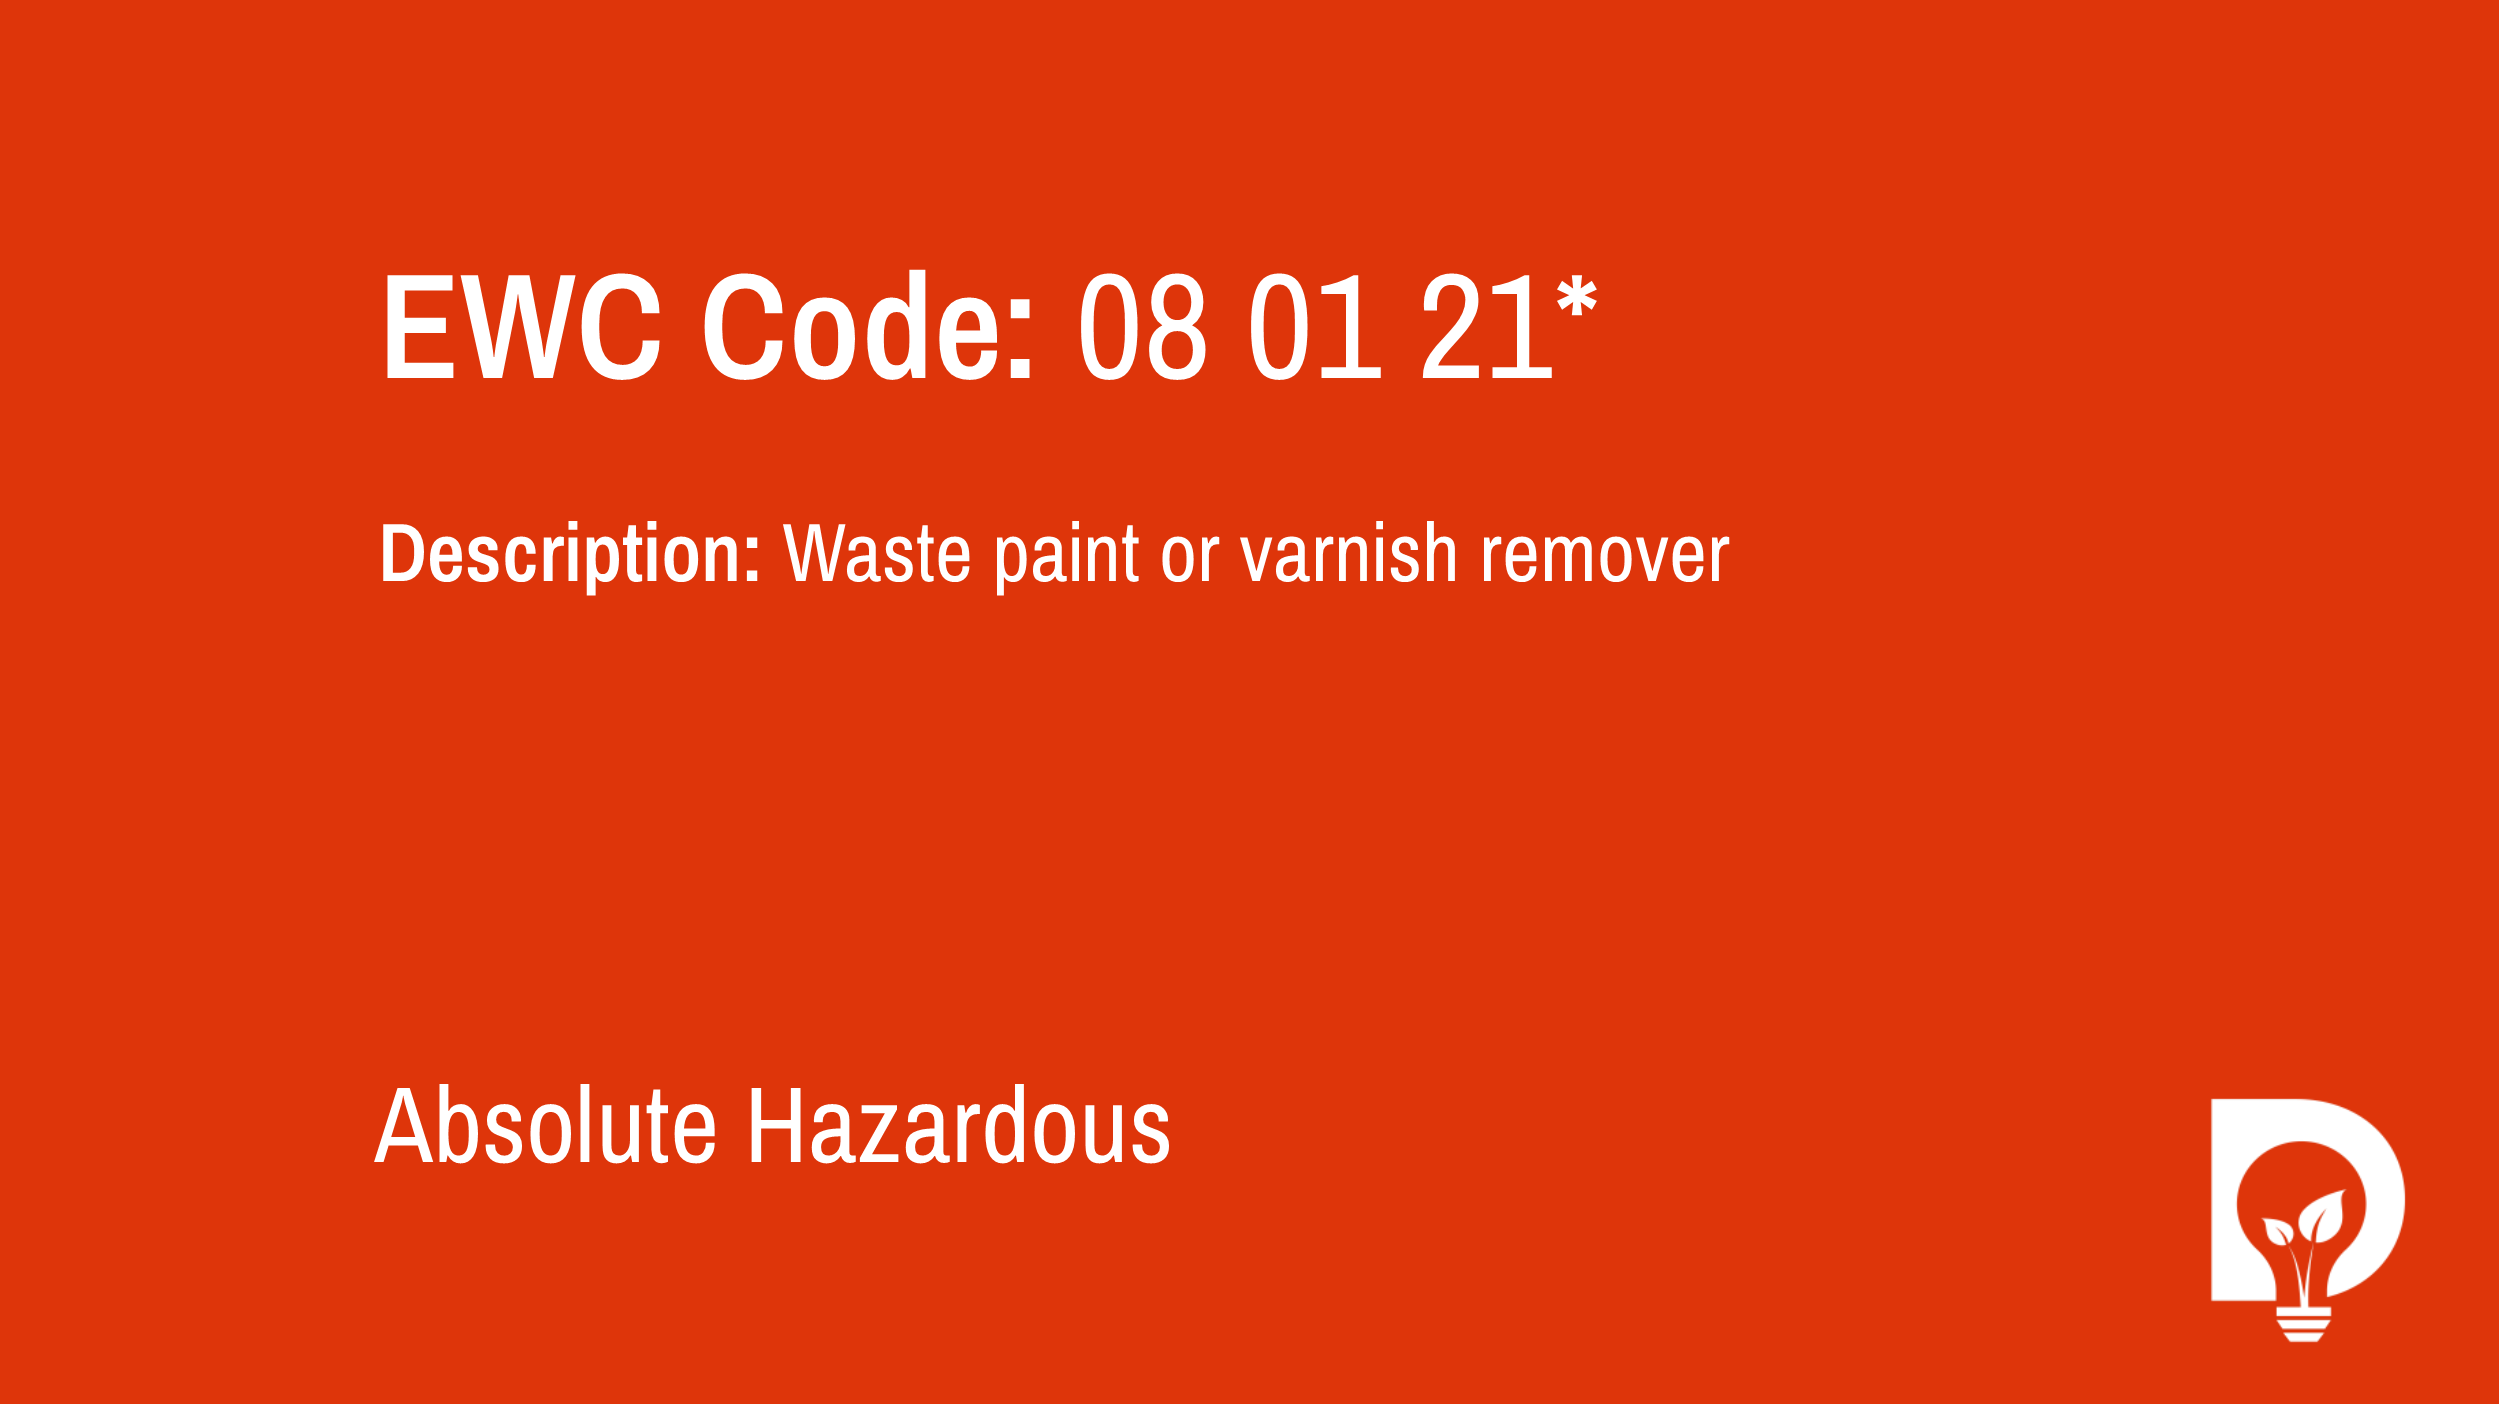 EWC Code: 08 01 21* - waste paint or varnish remover. Type: Absolute Hazardous. Image by Dsposal